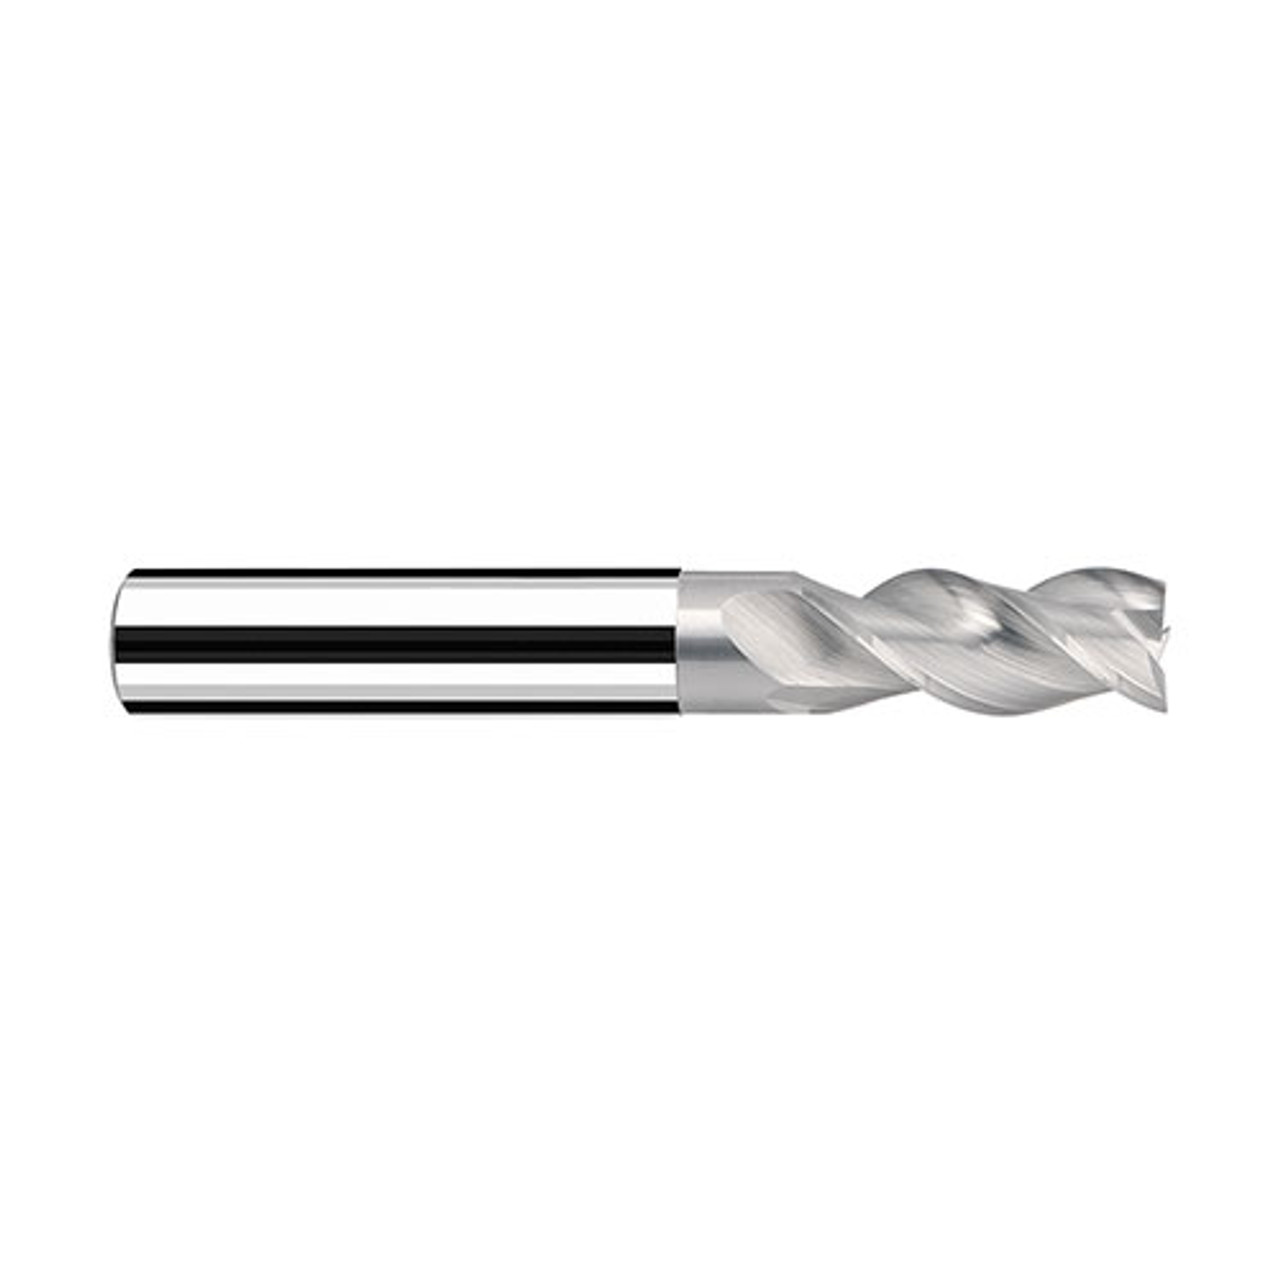 Fraisa AX-NV3 4 mm Diameter 57 mm OAL Square End Mill EDP: C15530220